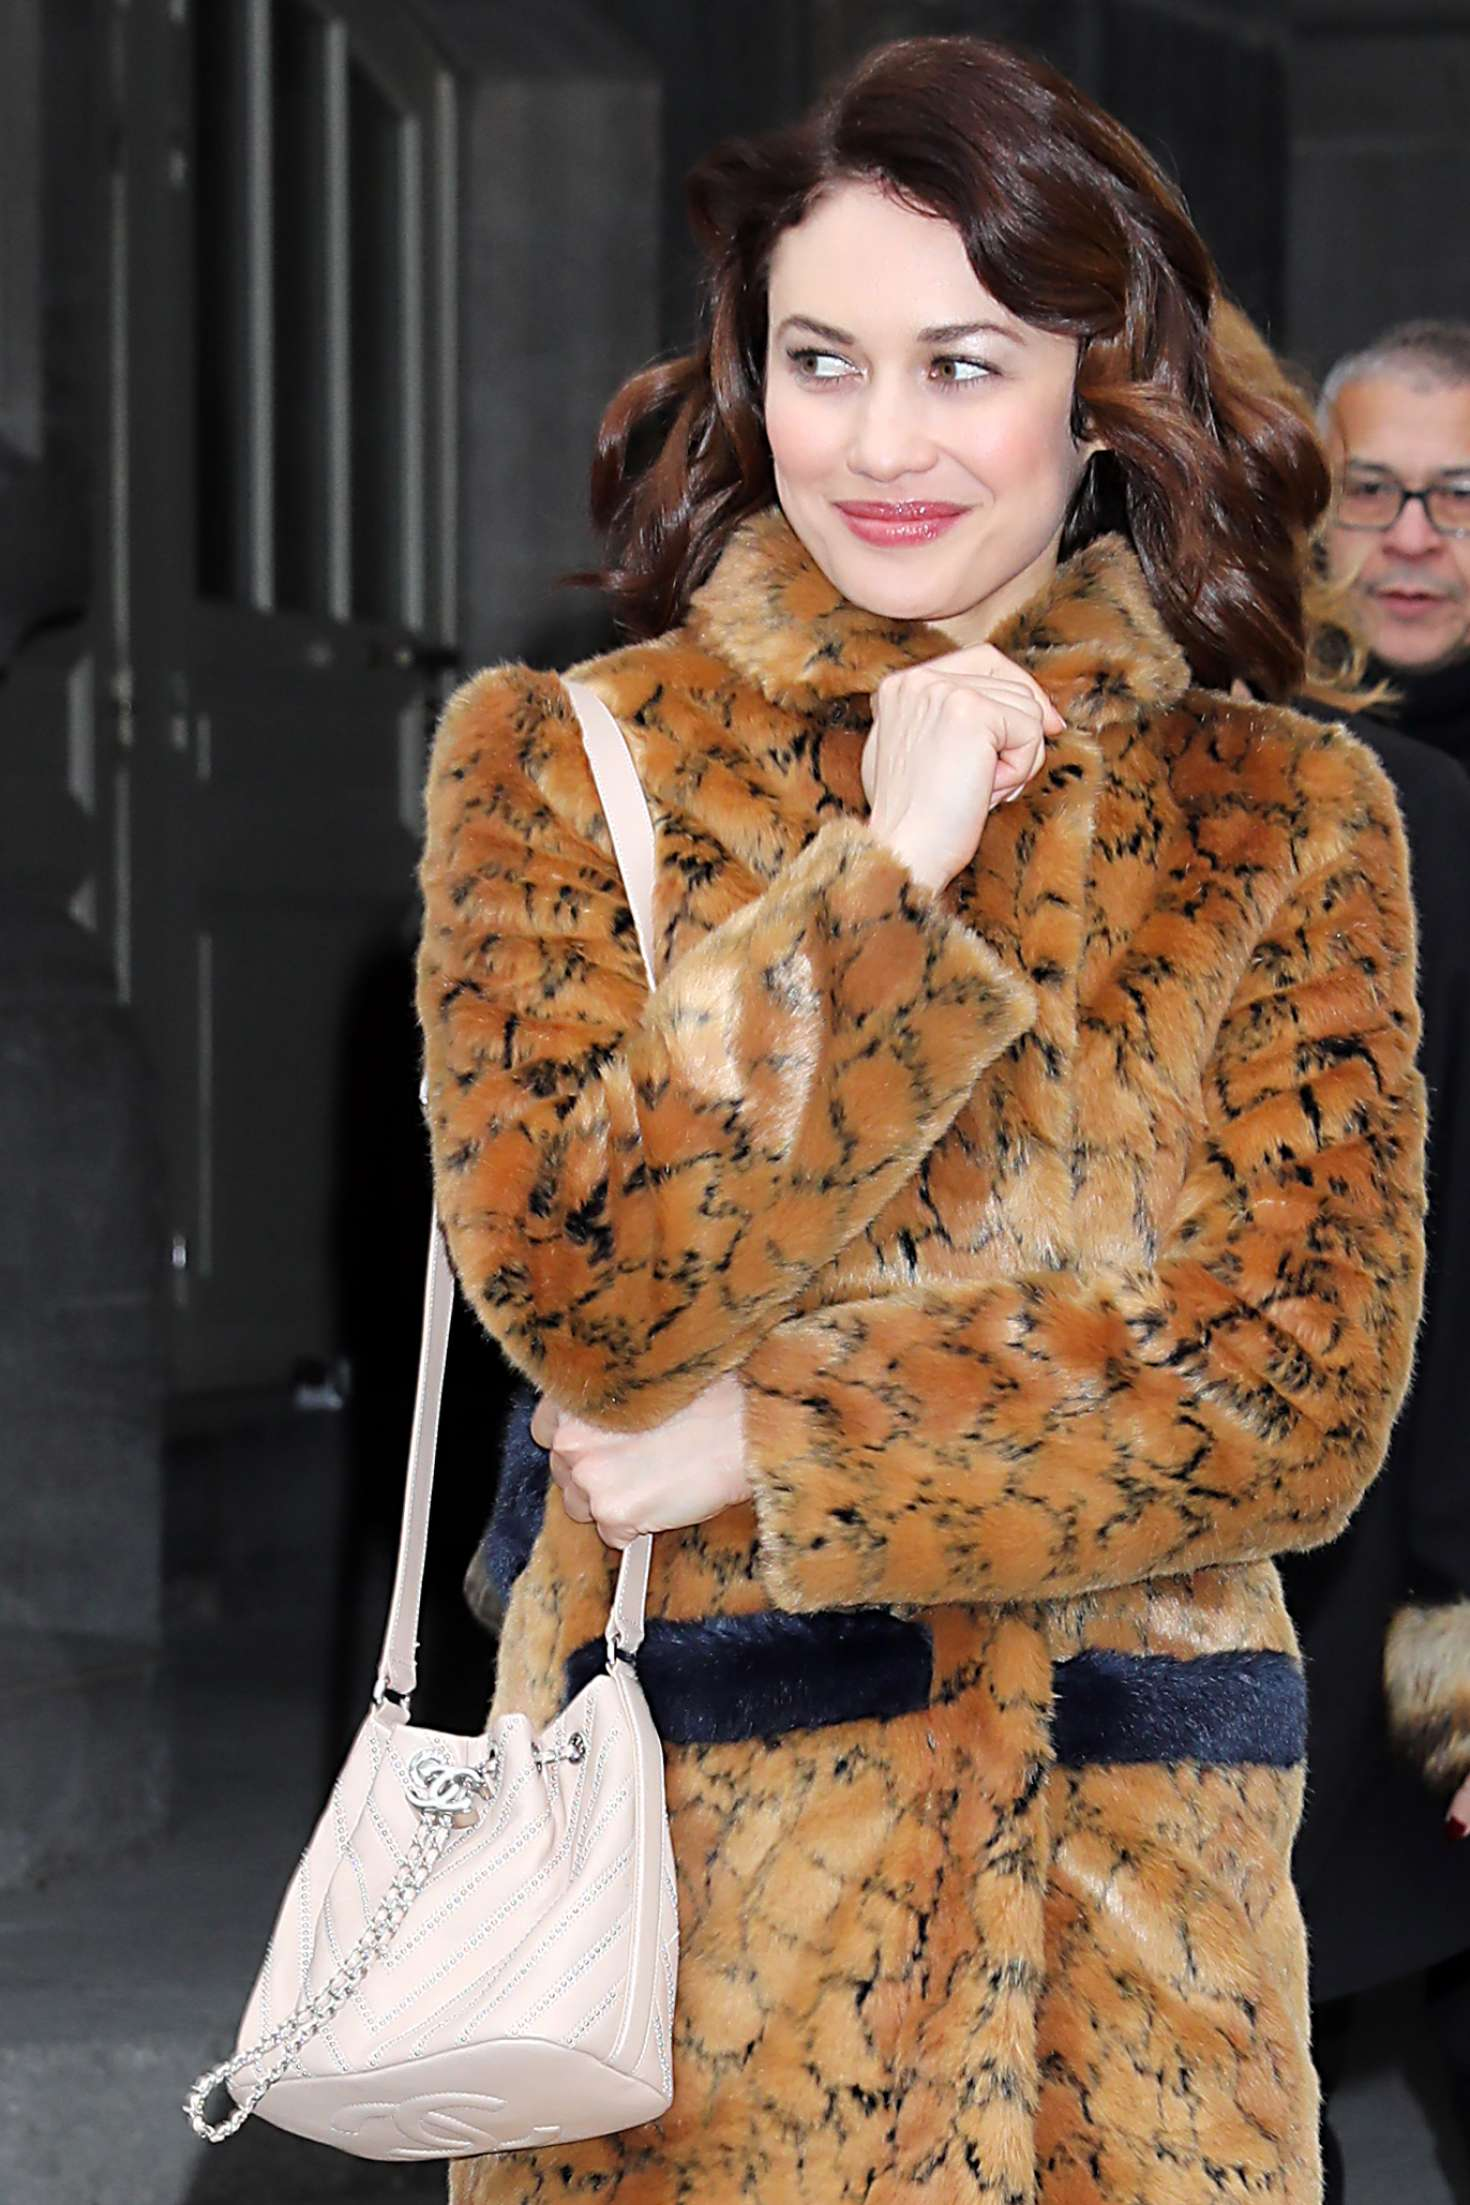 Olga Kurylenko - Leaving Chanel FW 2017 Show in Paris